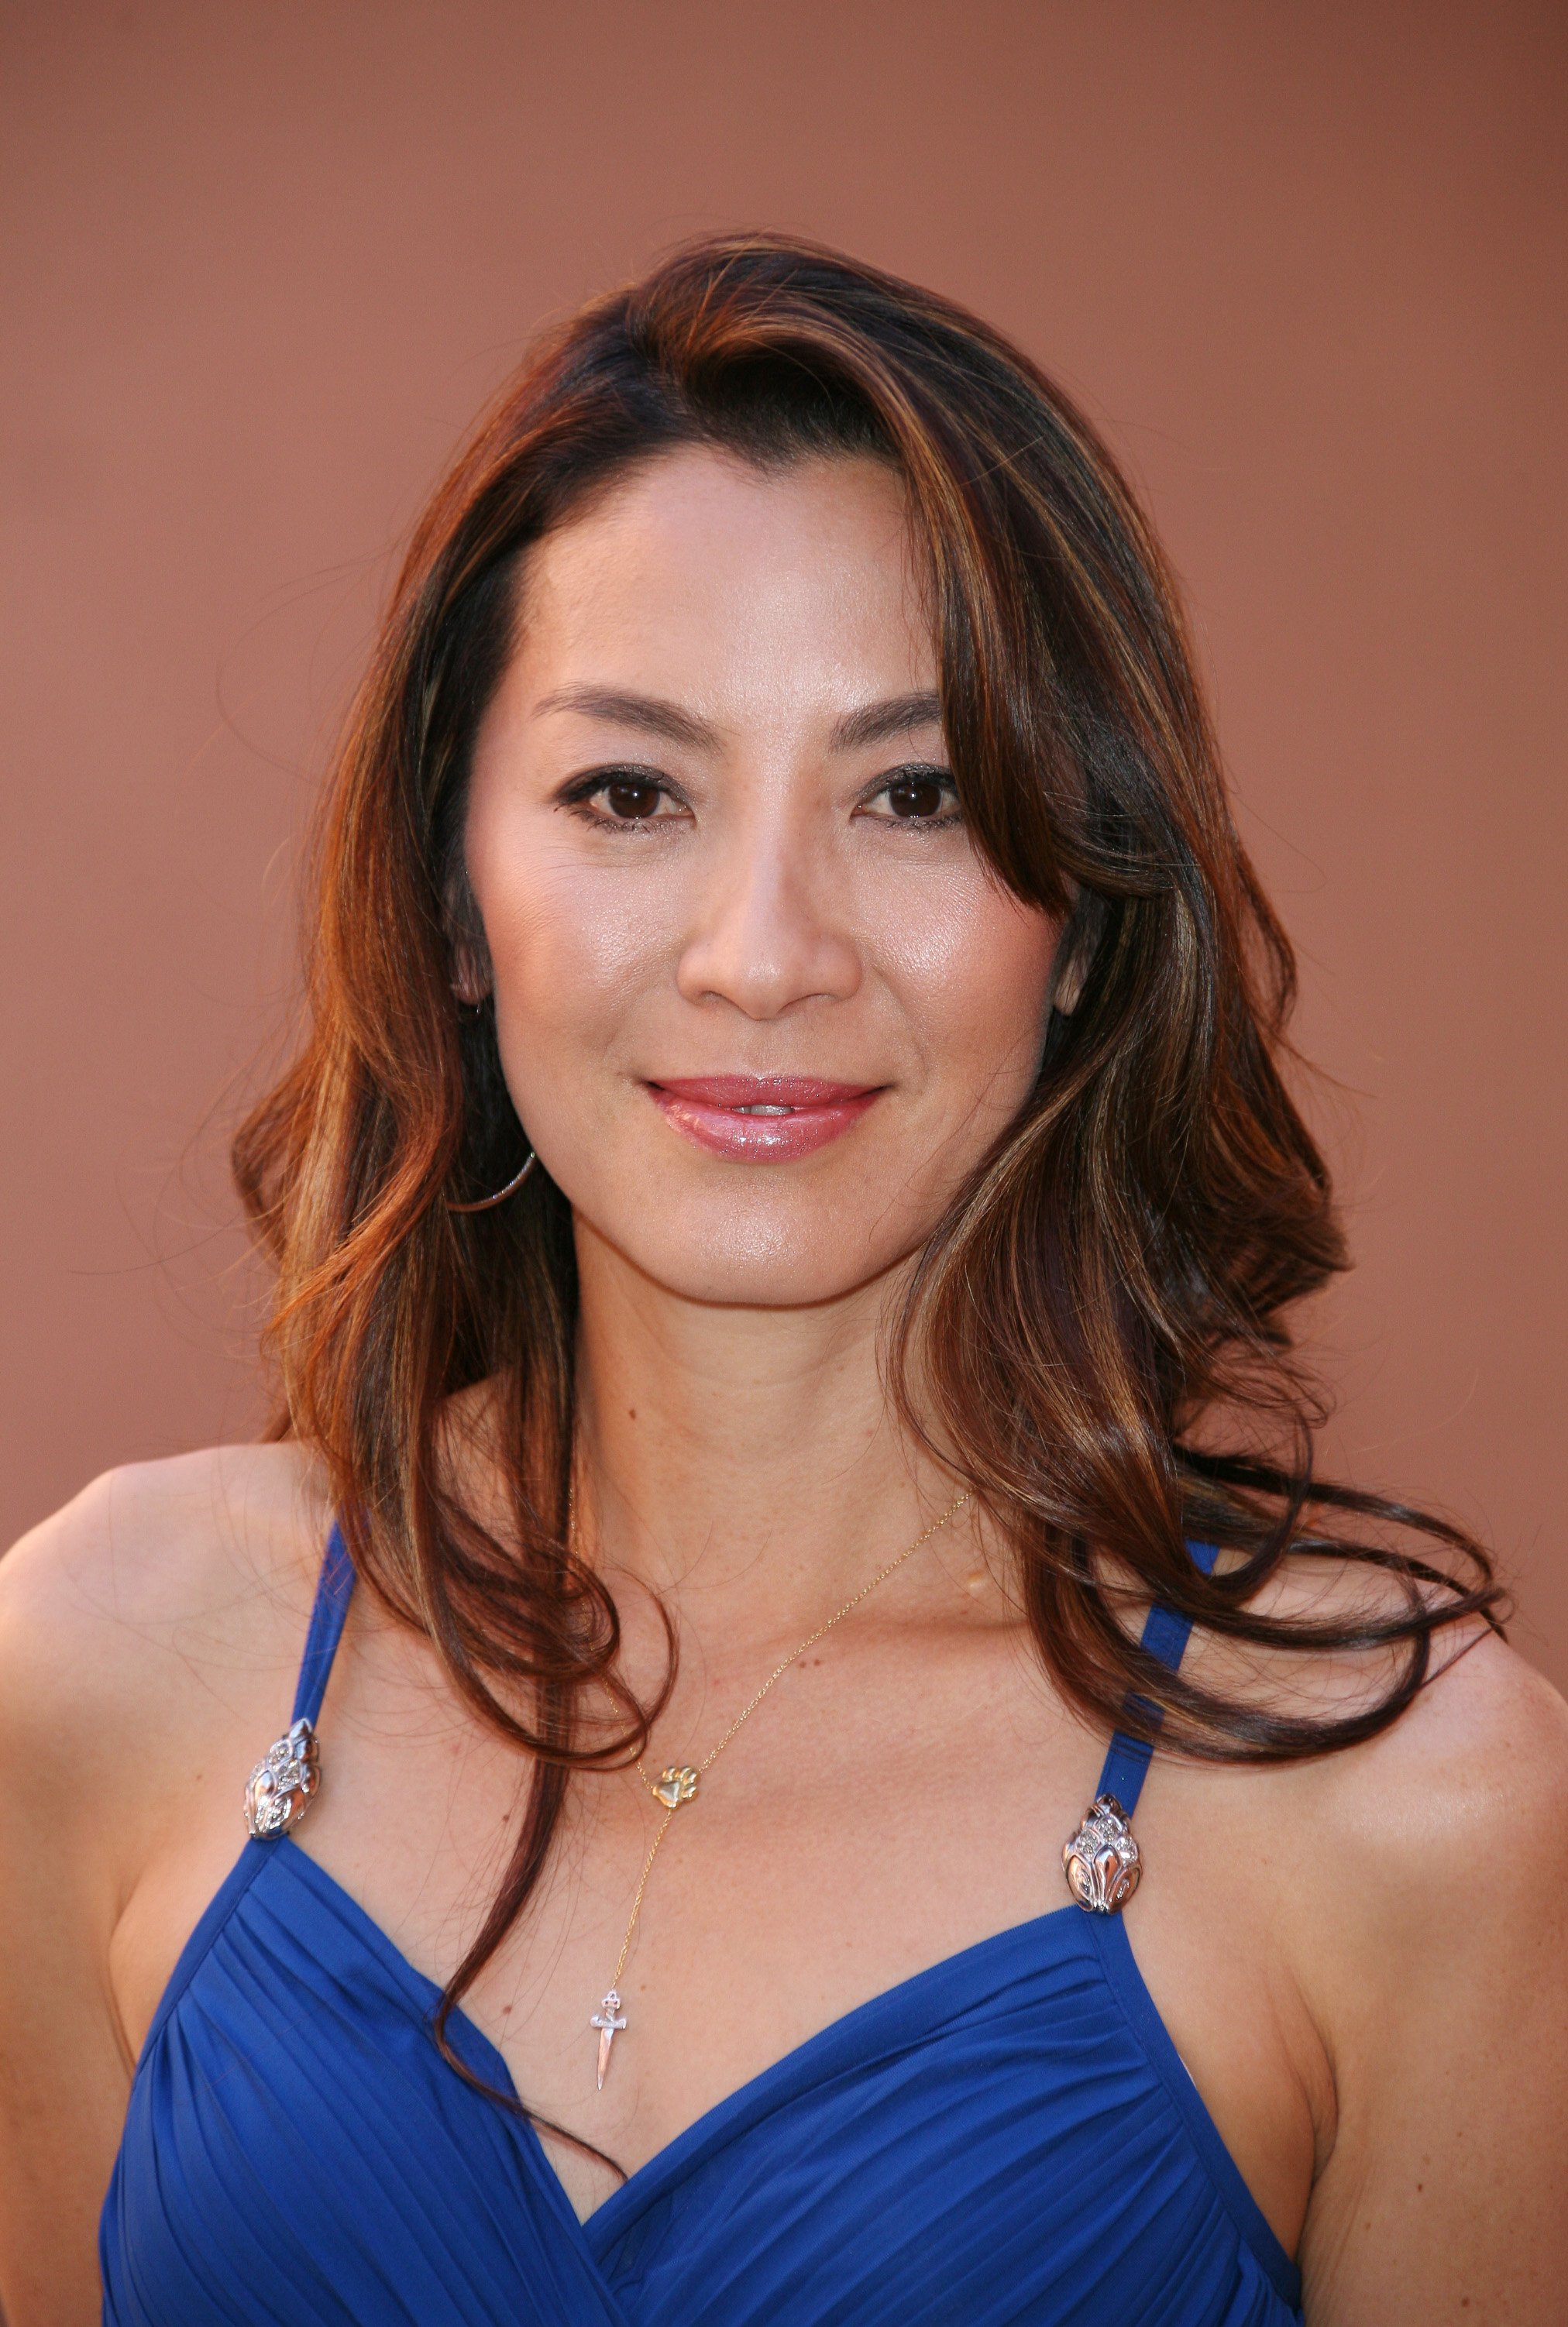 michelle yeoh wai linmichelle yeoh young, michelle yeoh silverhawk, michelle yeoh morgan, michelle yeoh wing chun, michelle yeoh 2000, michelle yeoh twitter, michelle yeoh vs zhang ziyi, michelle yeoh tumblr, michelle yeoh miss malaysia 1983, michelle yeoh jackie chan, michelle yeoh wikipedia, michelle yeoh instagram, michelle yeoh wai lin, michelle yeoh movies, michelle yeoh net worth, michelle yeoh discovery, michelle yeoh and jet li, michelle yeoh facts, michelle yeoh 2017, michelle yeoh and jean todt